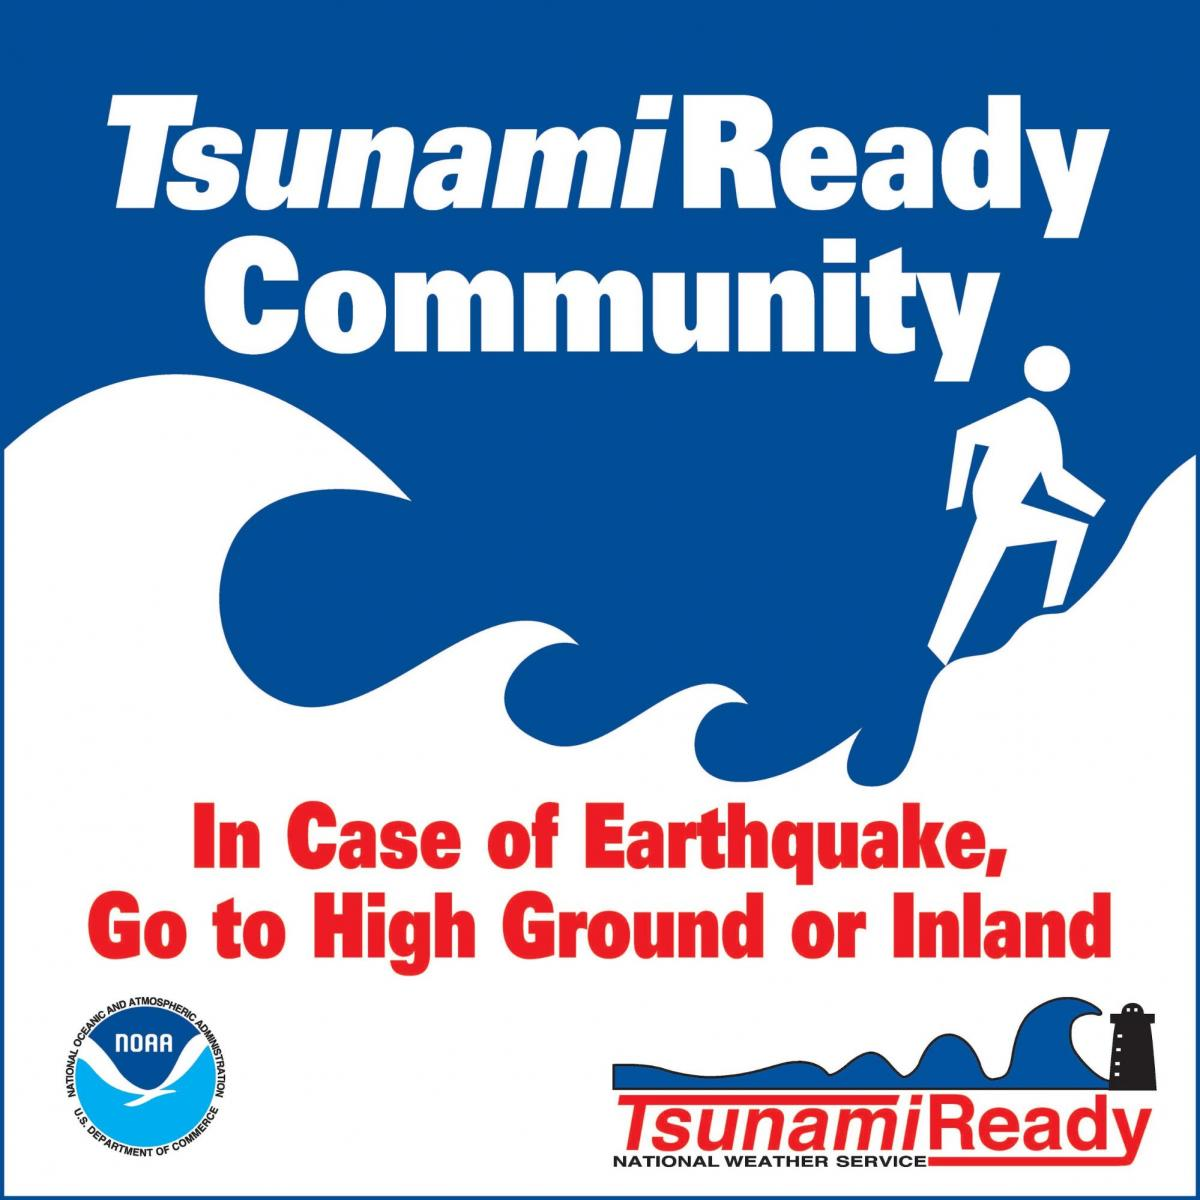 TsunamiReady Community: In case of earthquake, go to high ground or inland.